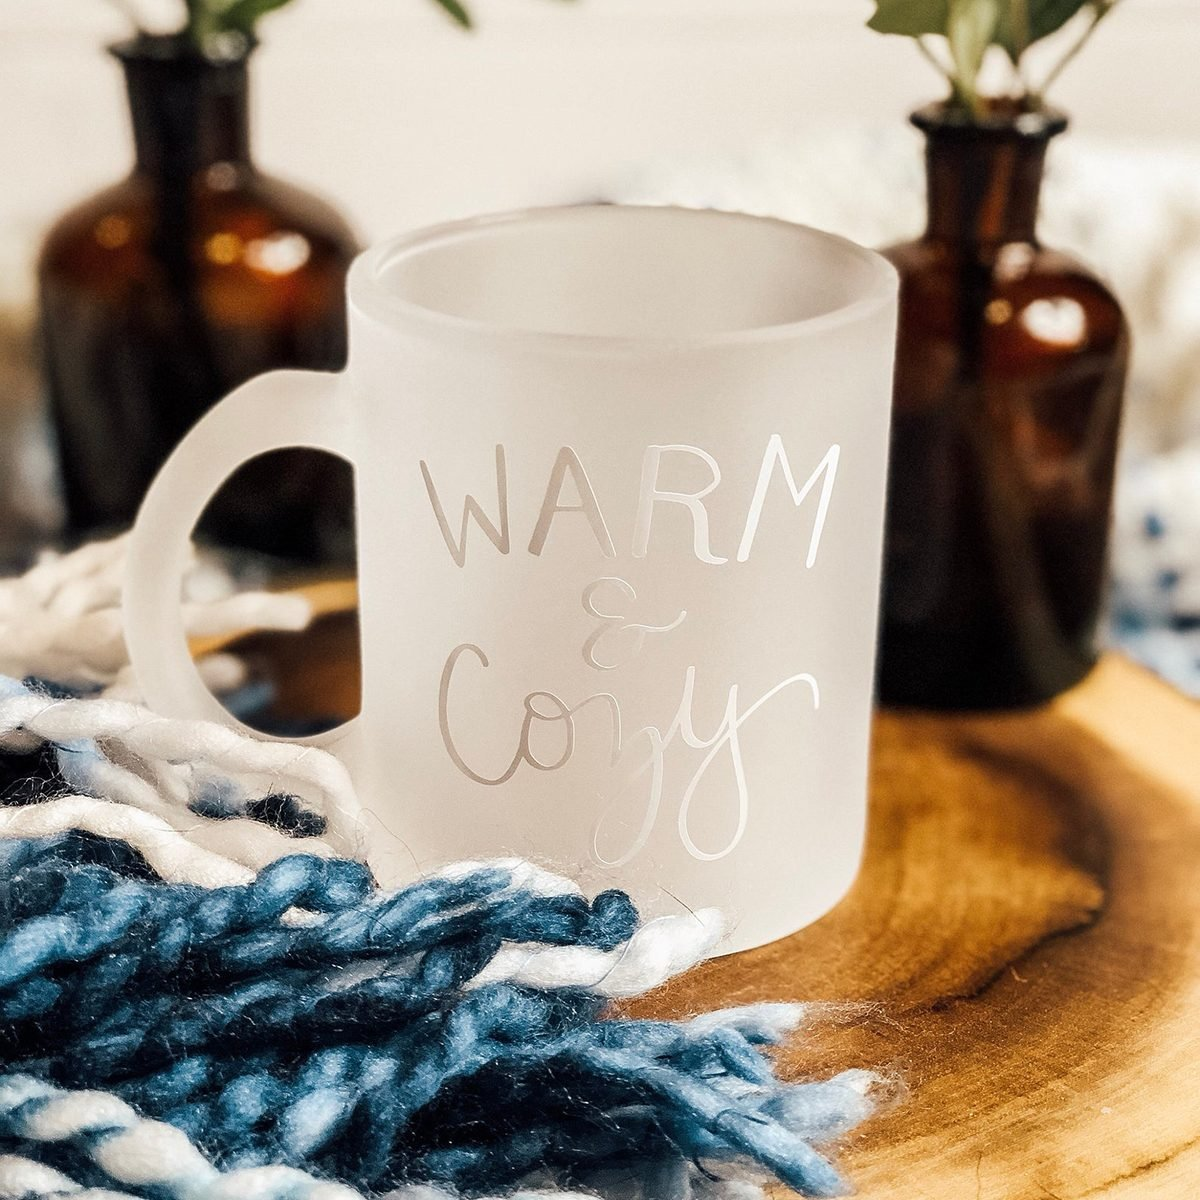 Warm & Cozy Mug | Frosted Mug | Warm and Cozy